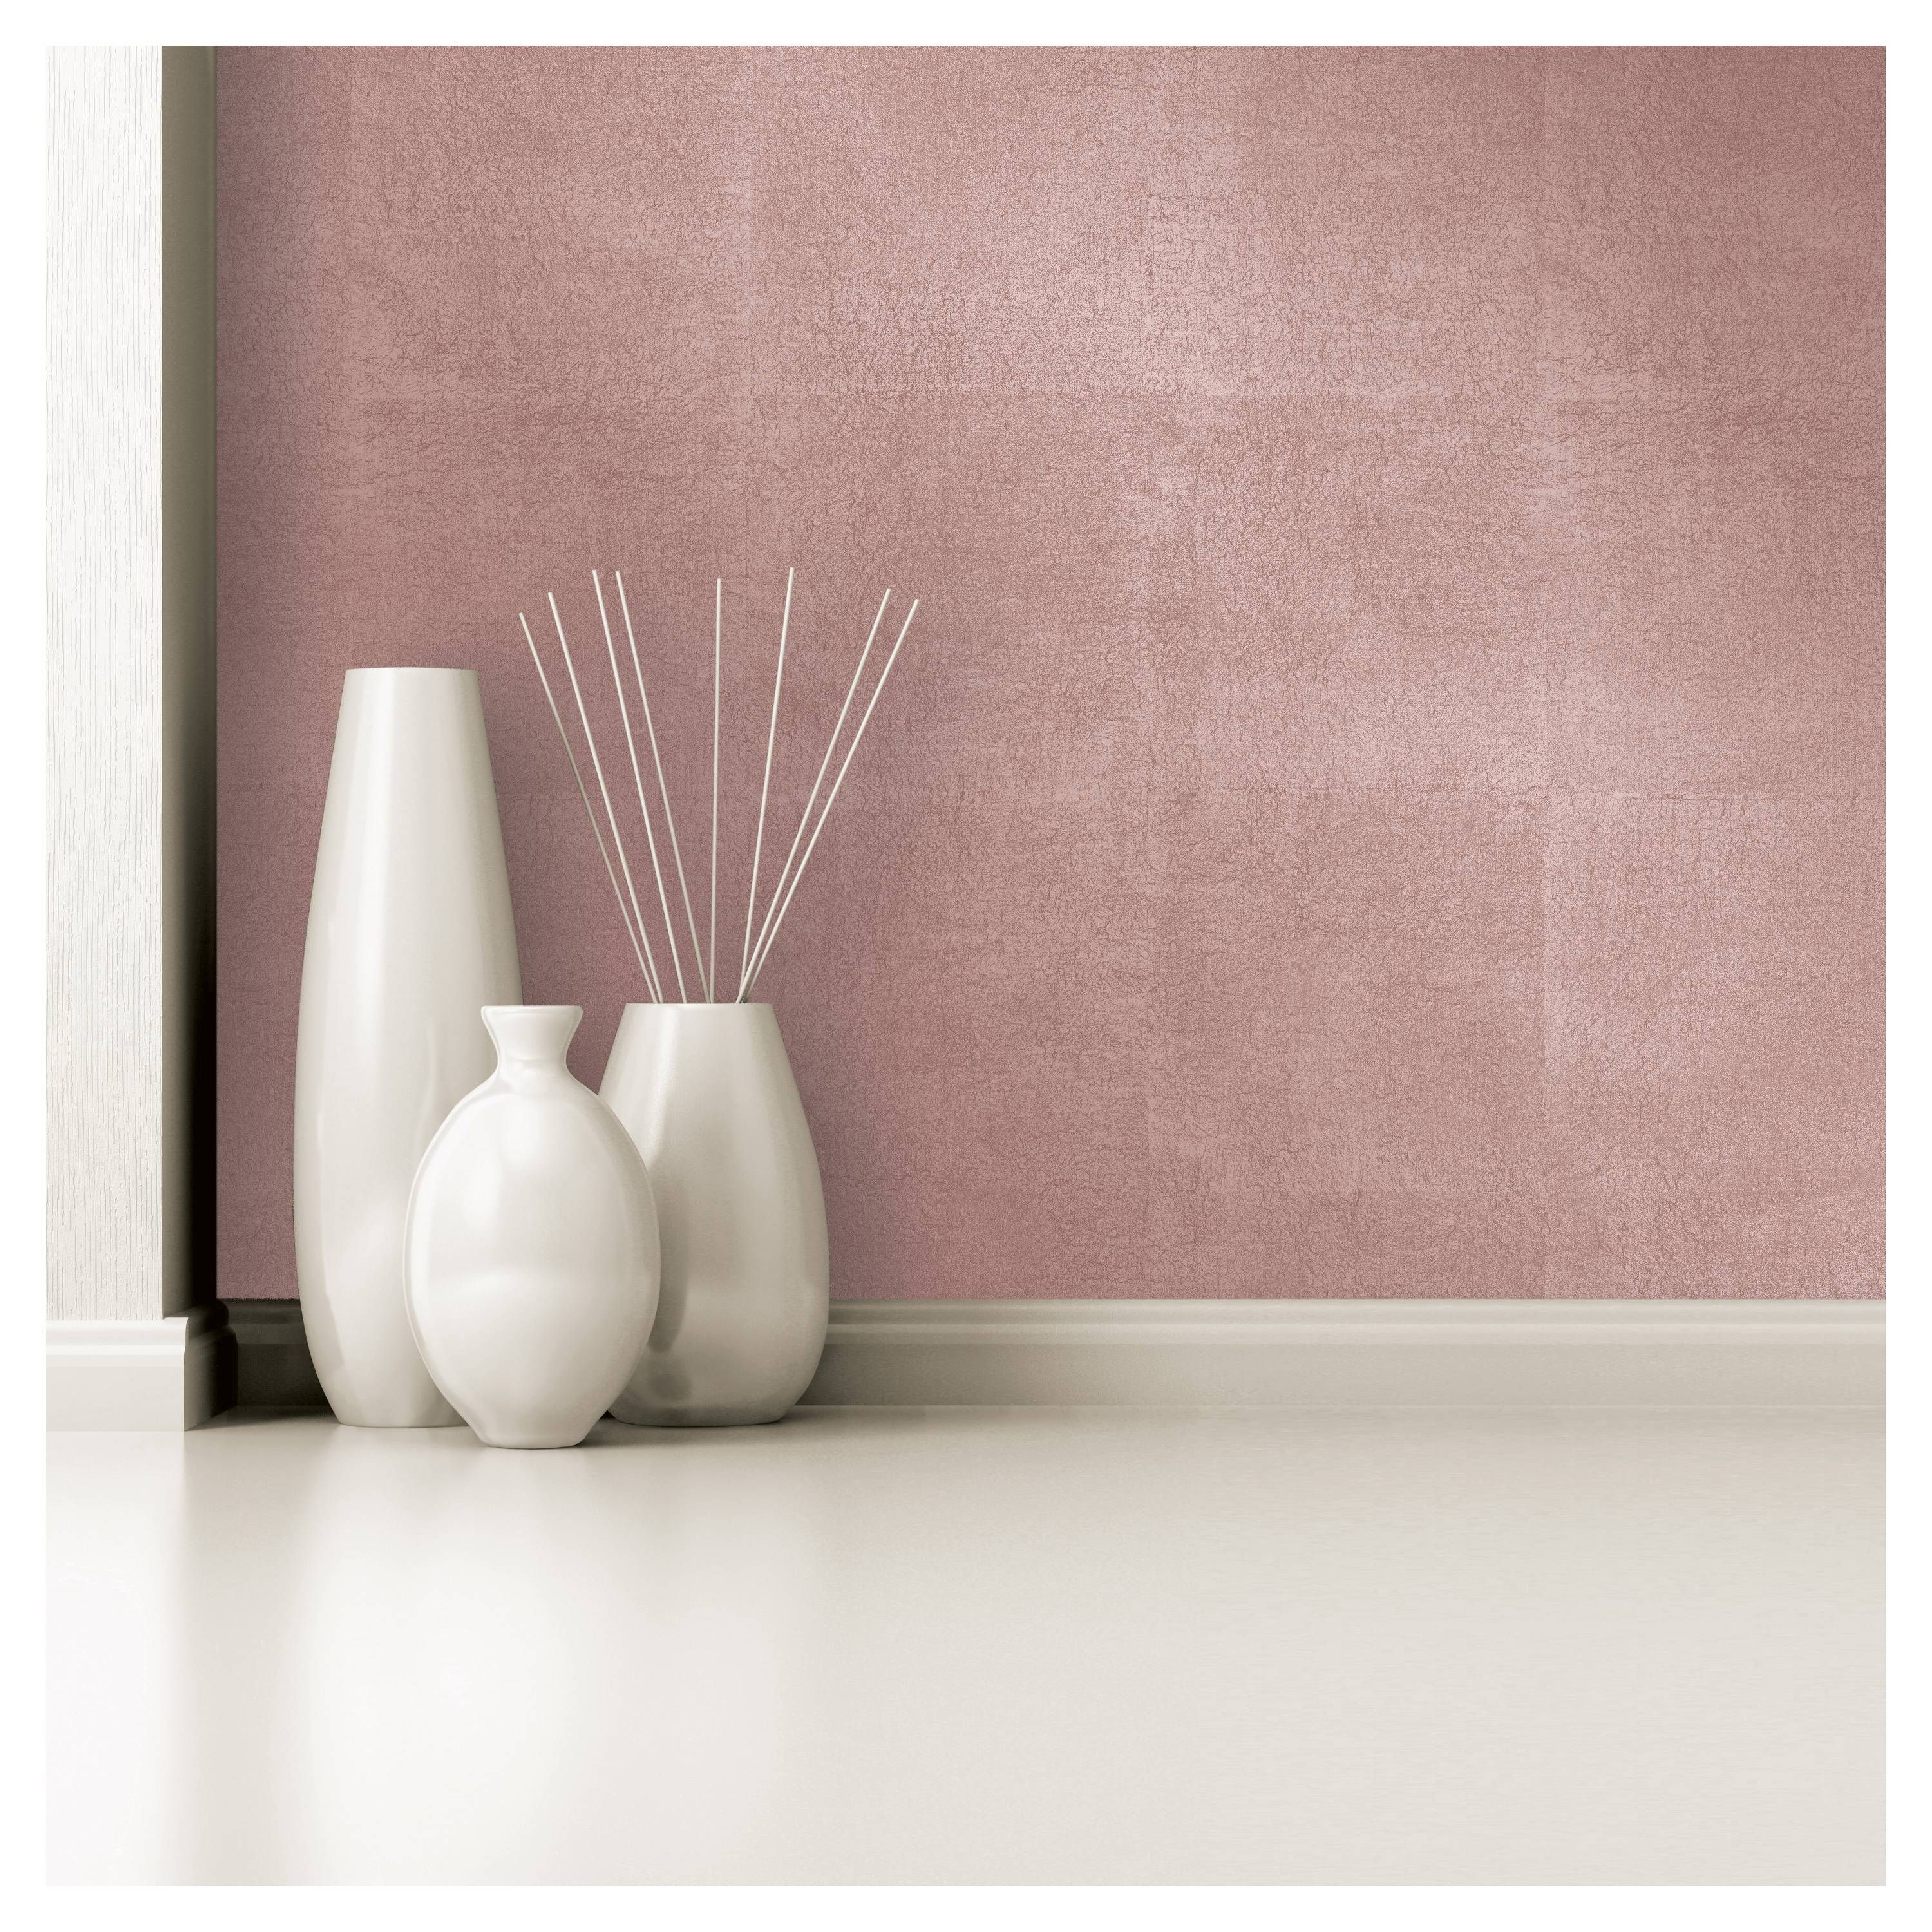 Metallic Leaf Peel Stick Wallpaper Pink Project 62 Peel And Stick Wallpaper Rose Gold Painting Gold Accent Wall